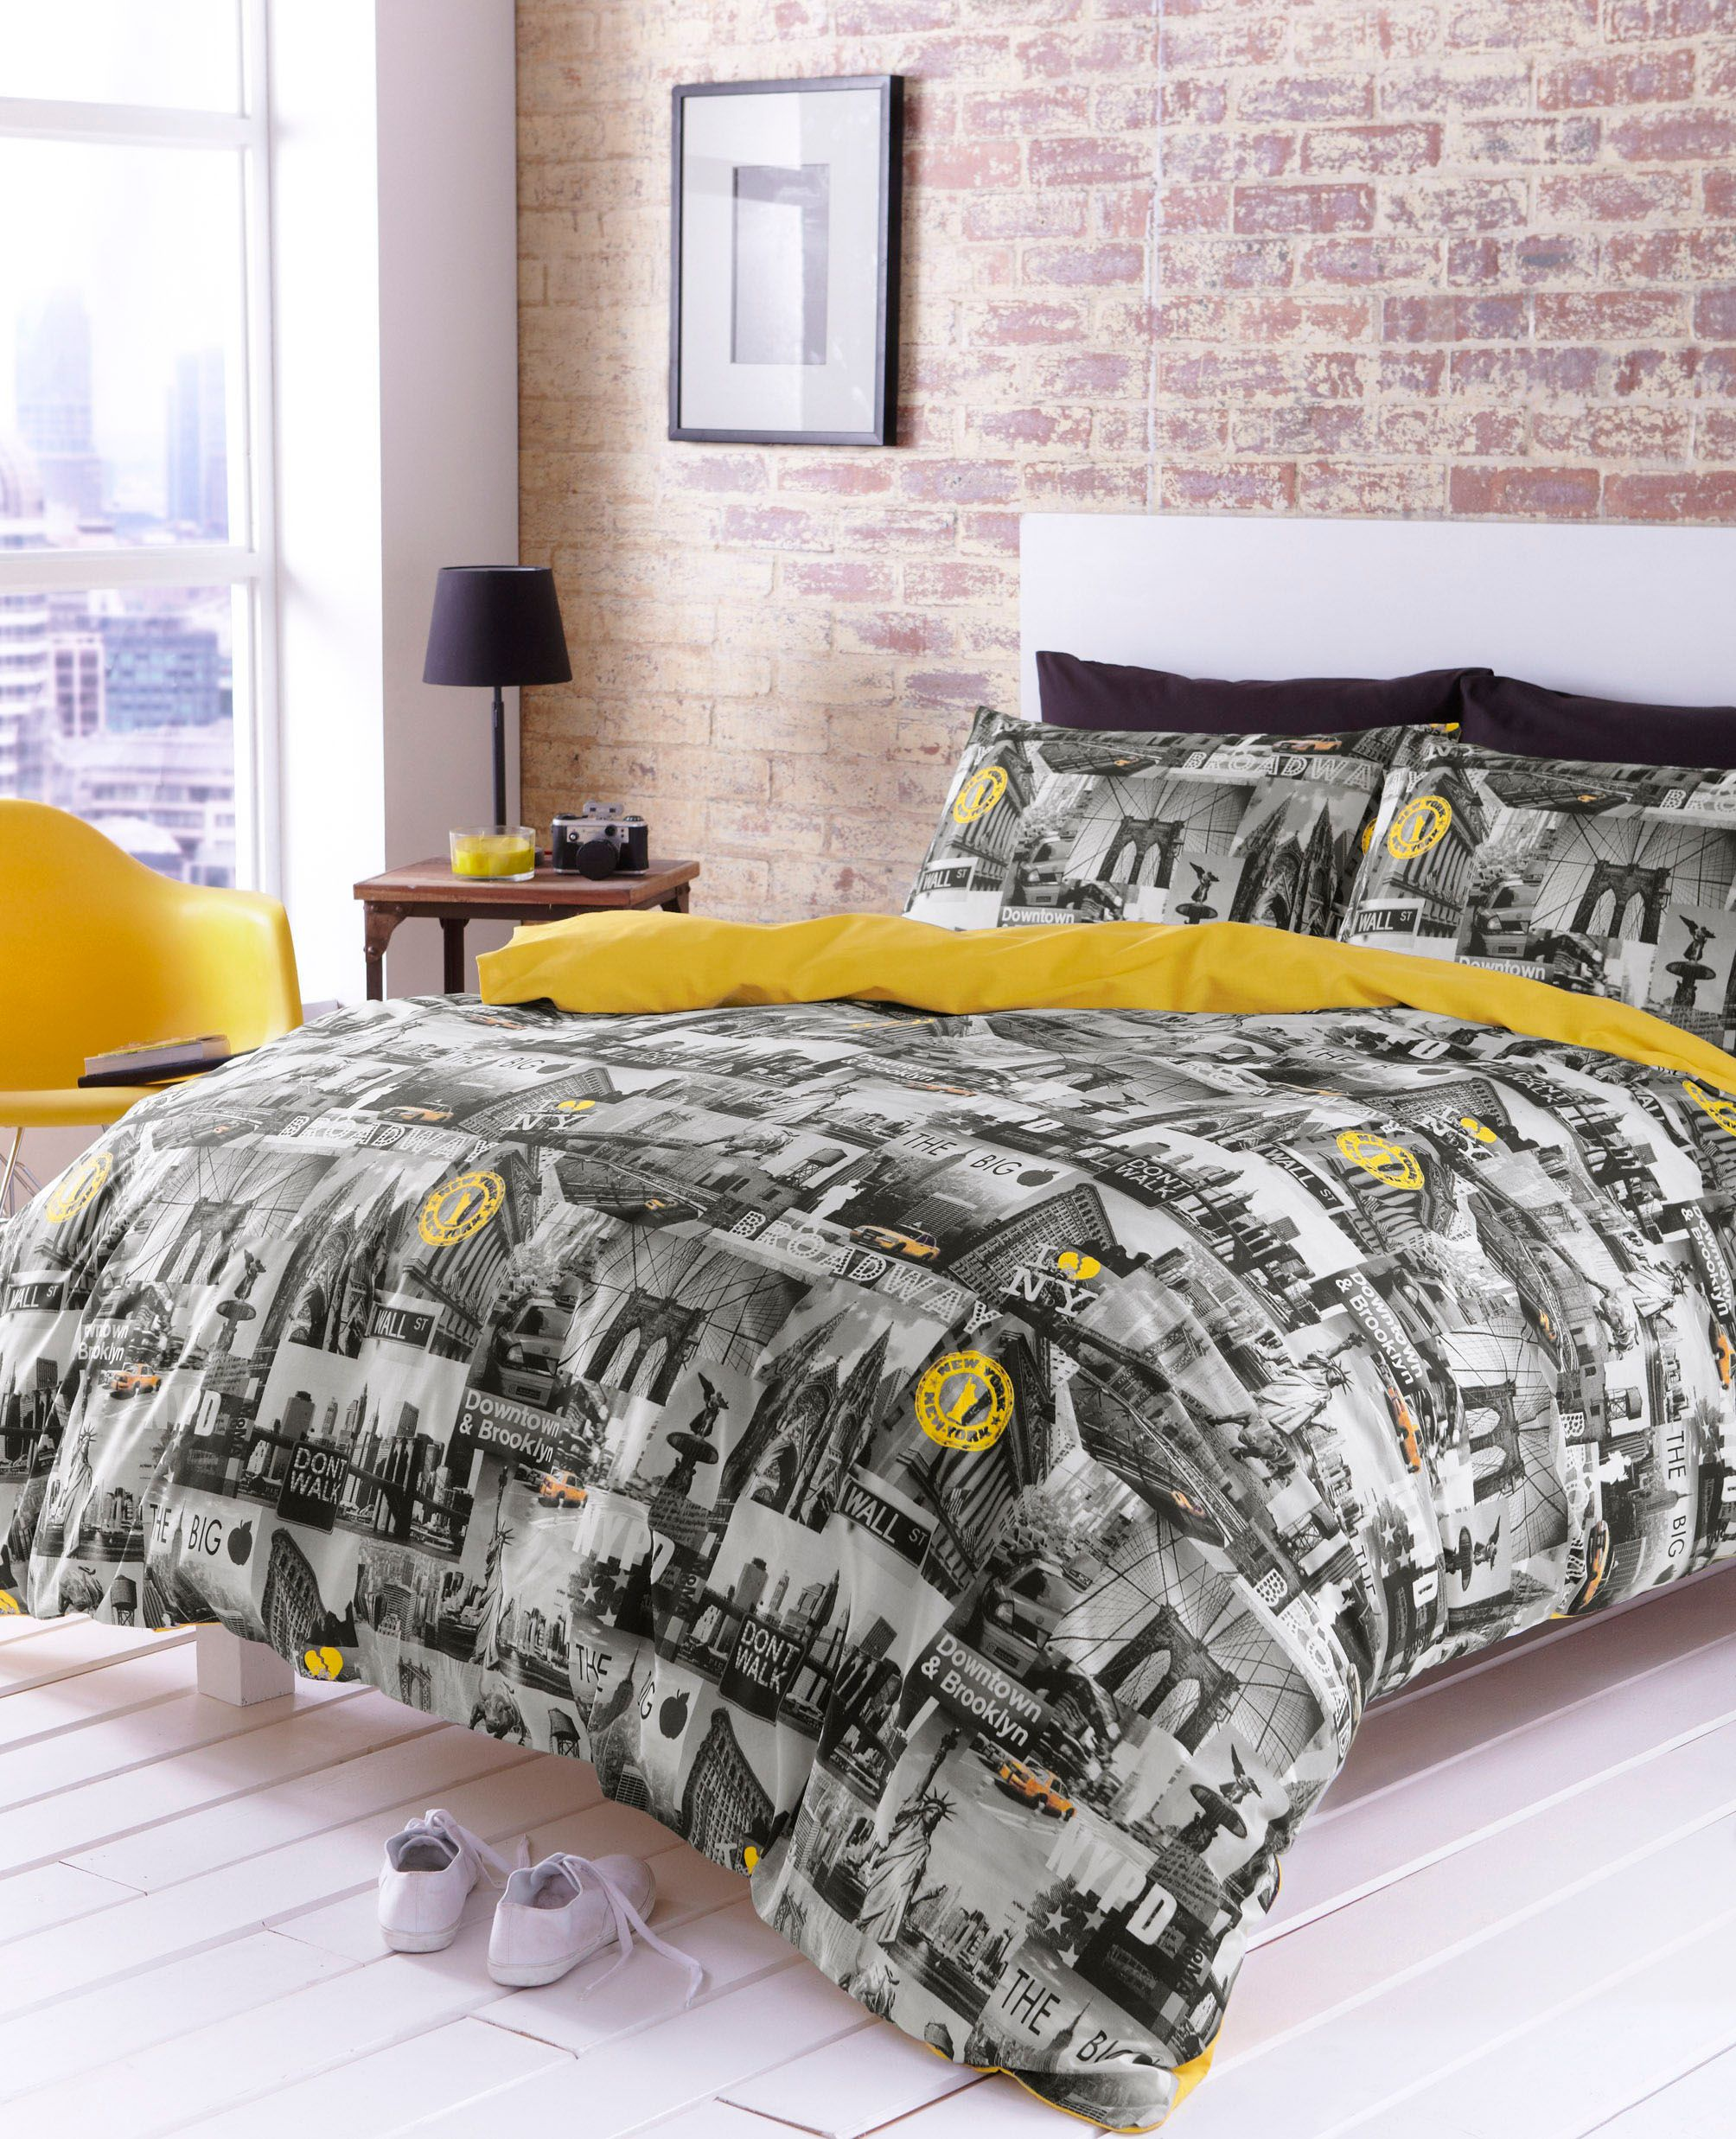 Manhattan sky line bed linen